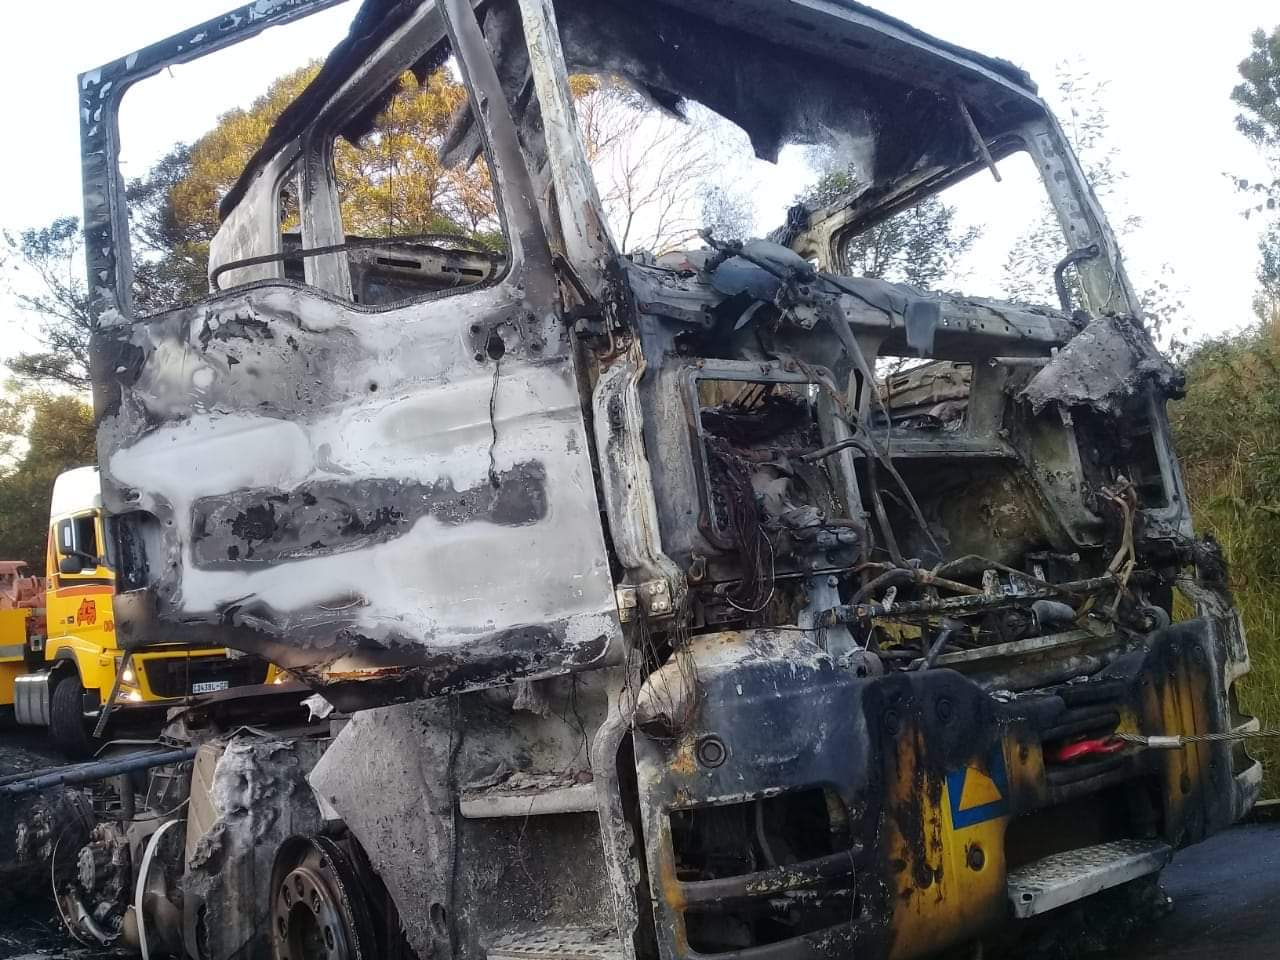 A factor having a negative impact on truck sales and the industry in general is the on-going violence and attacks on trucks, especially along the N3 highway.